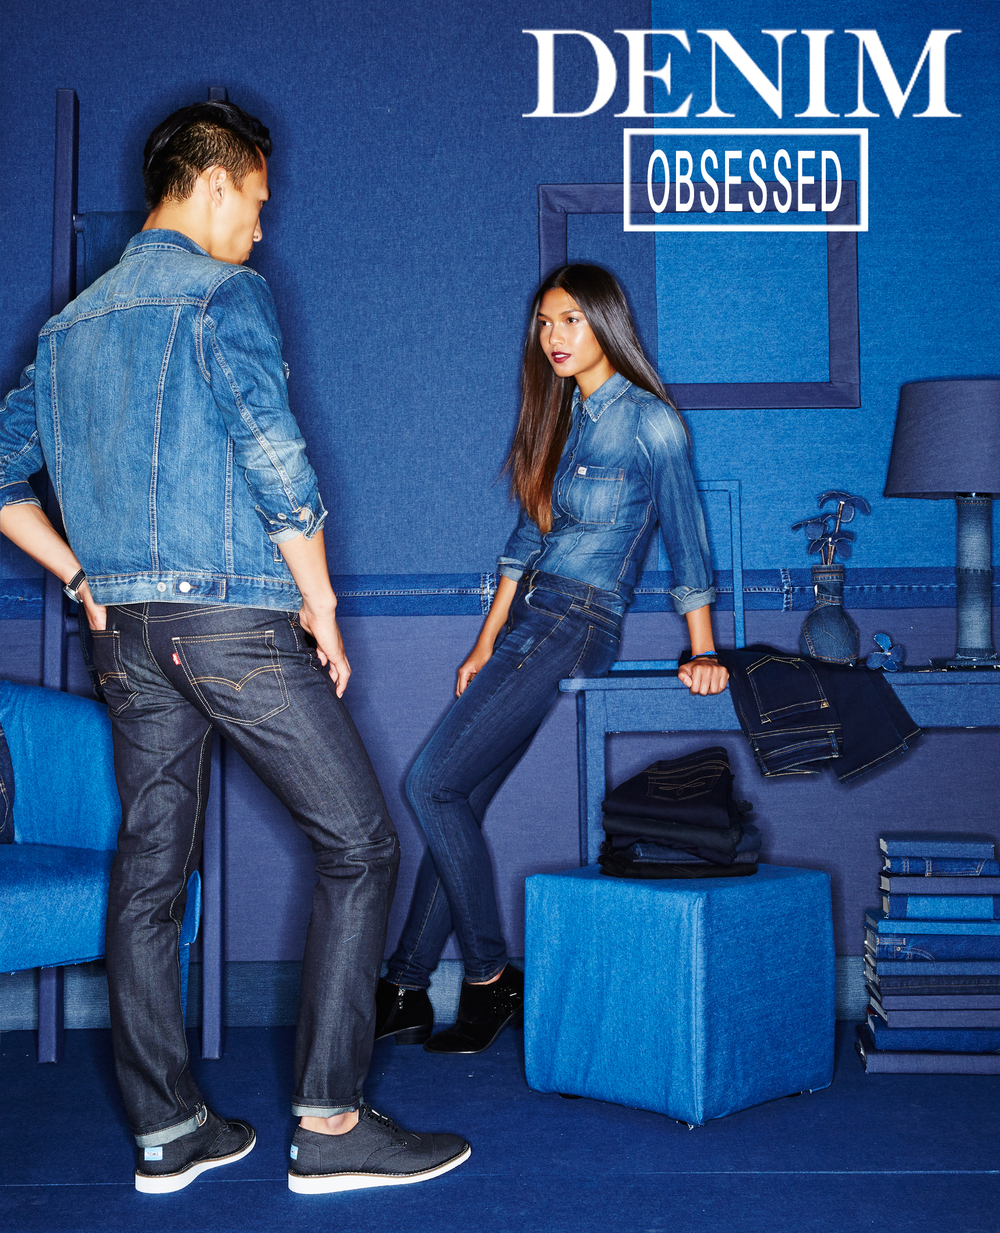 Obsessed-with-denim-3.jpg